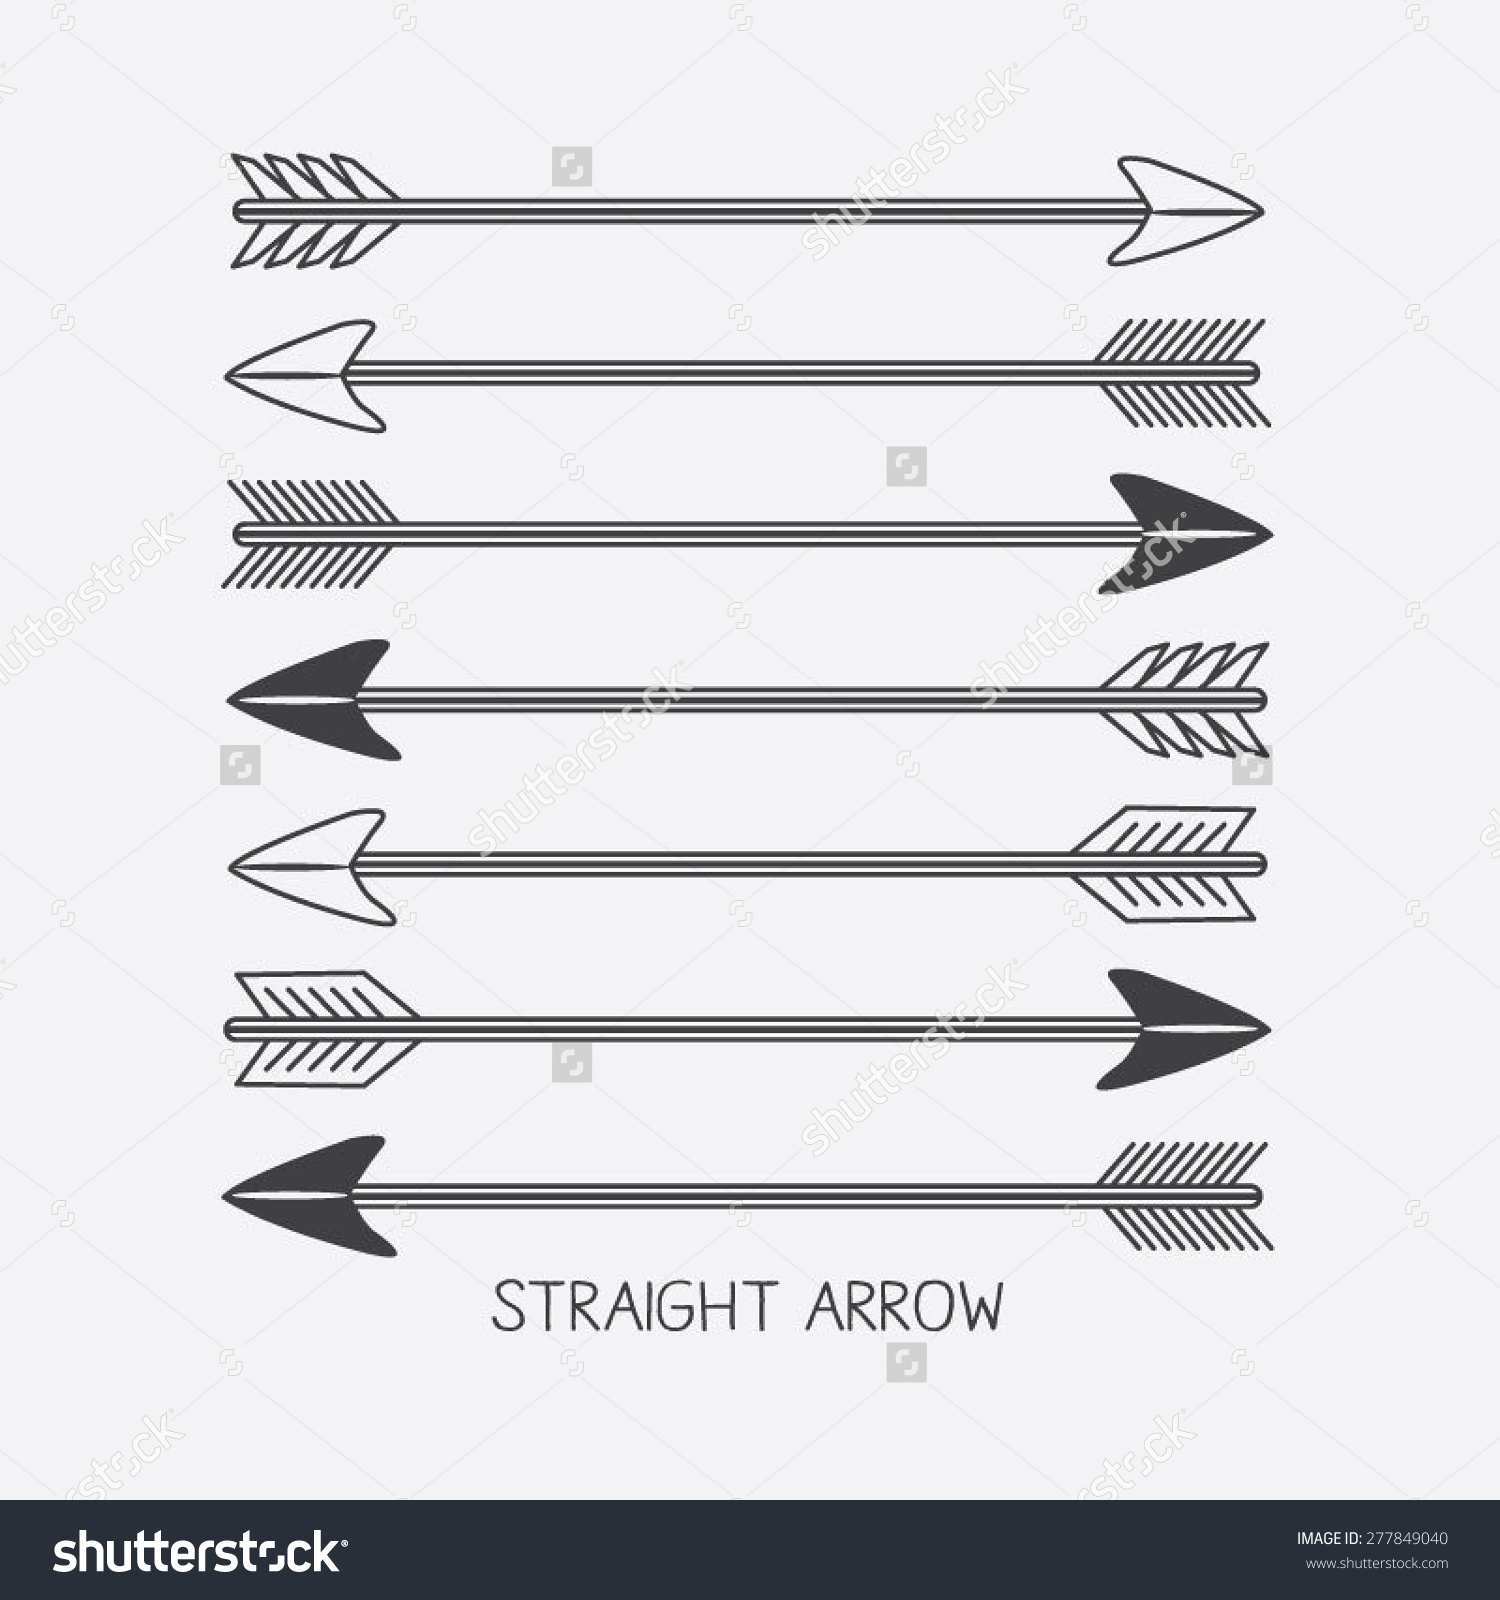 Indian arrow clipart images jpg black and white download Set Arrows Indian Illustration Tshirt Graphics Stock Vector ... jpg black and white download